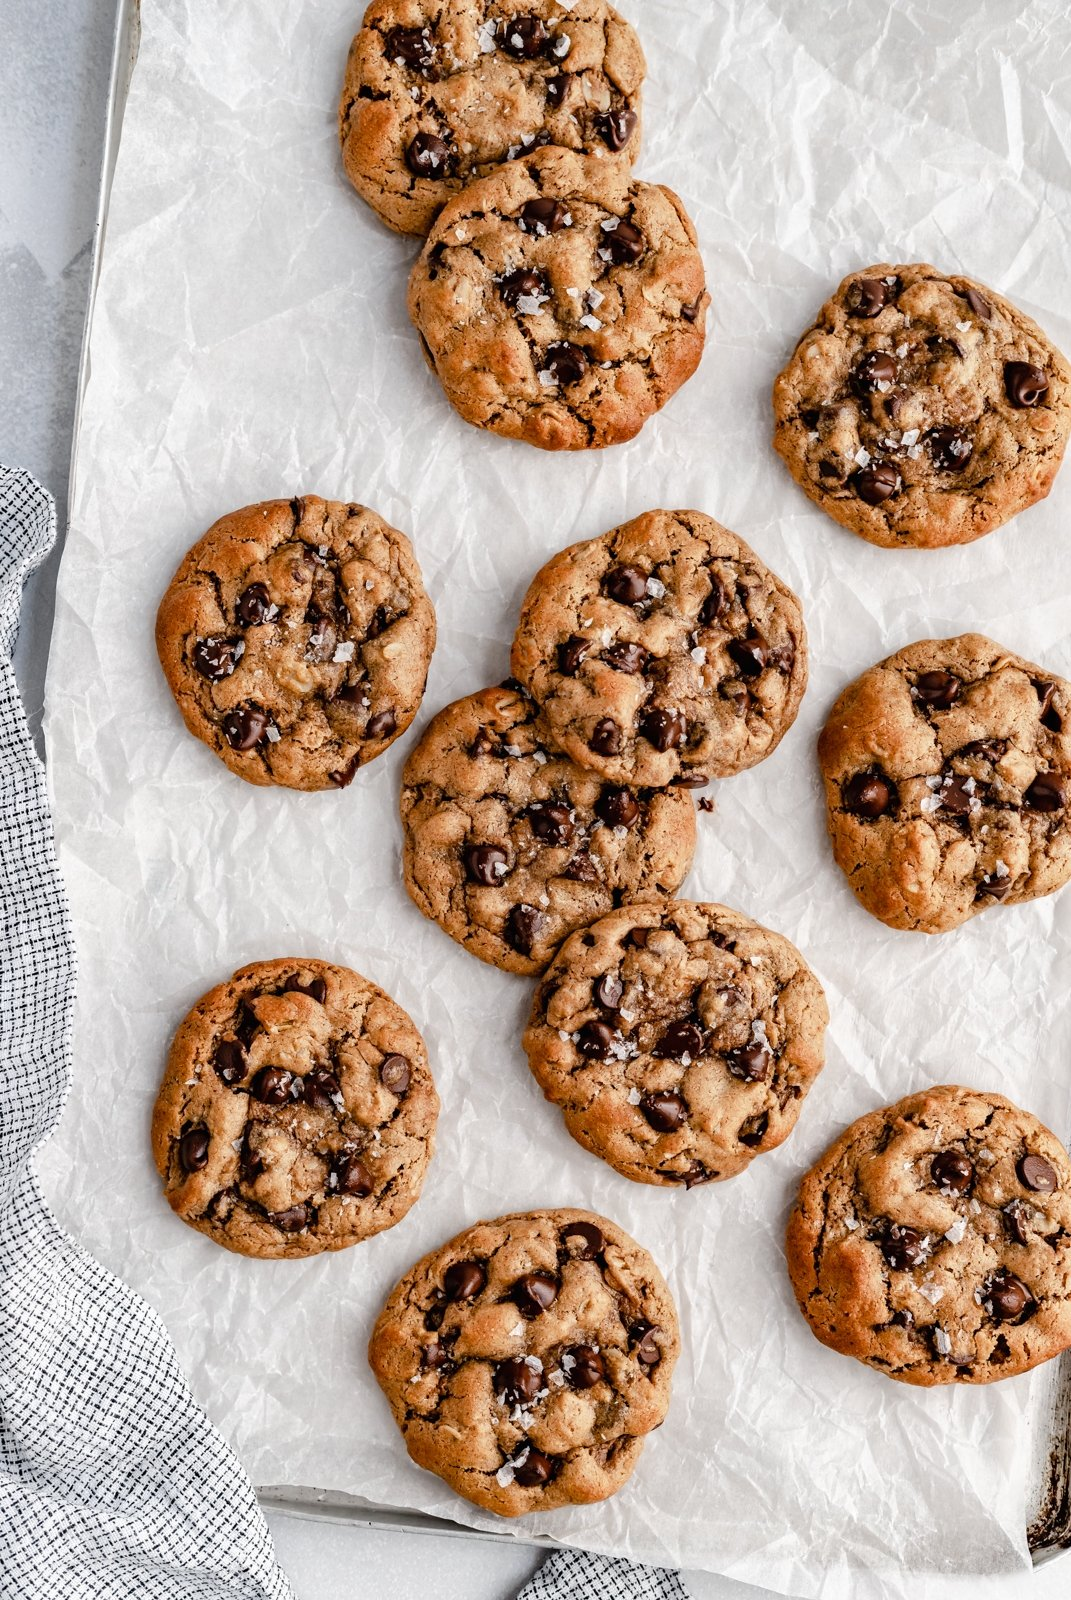 healthier flourless peanut butter oatmeal cookies on parchment paper